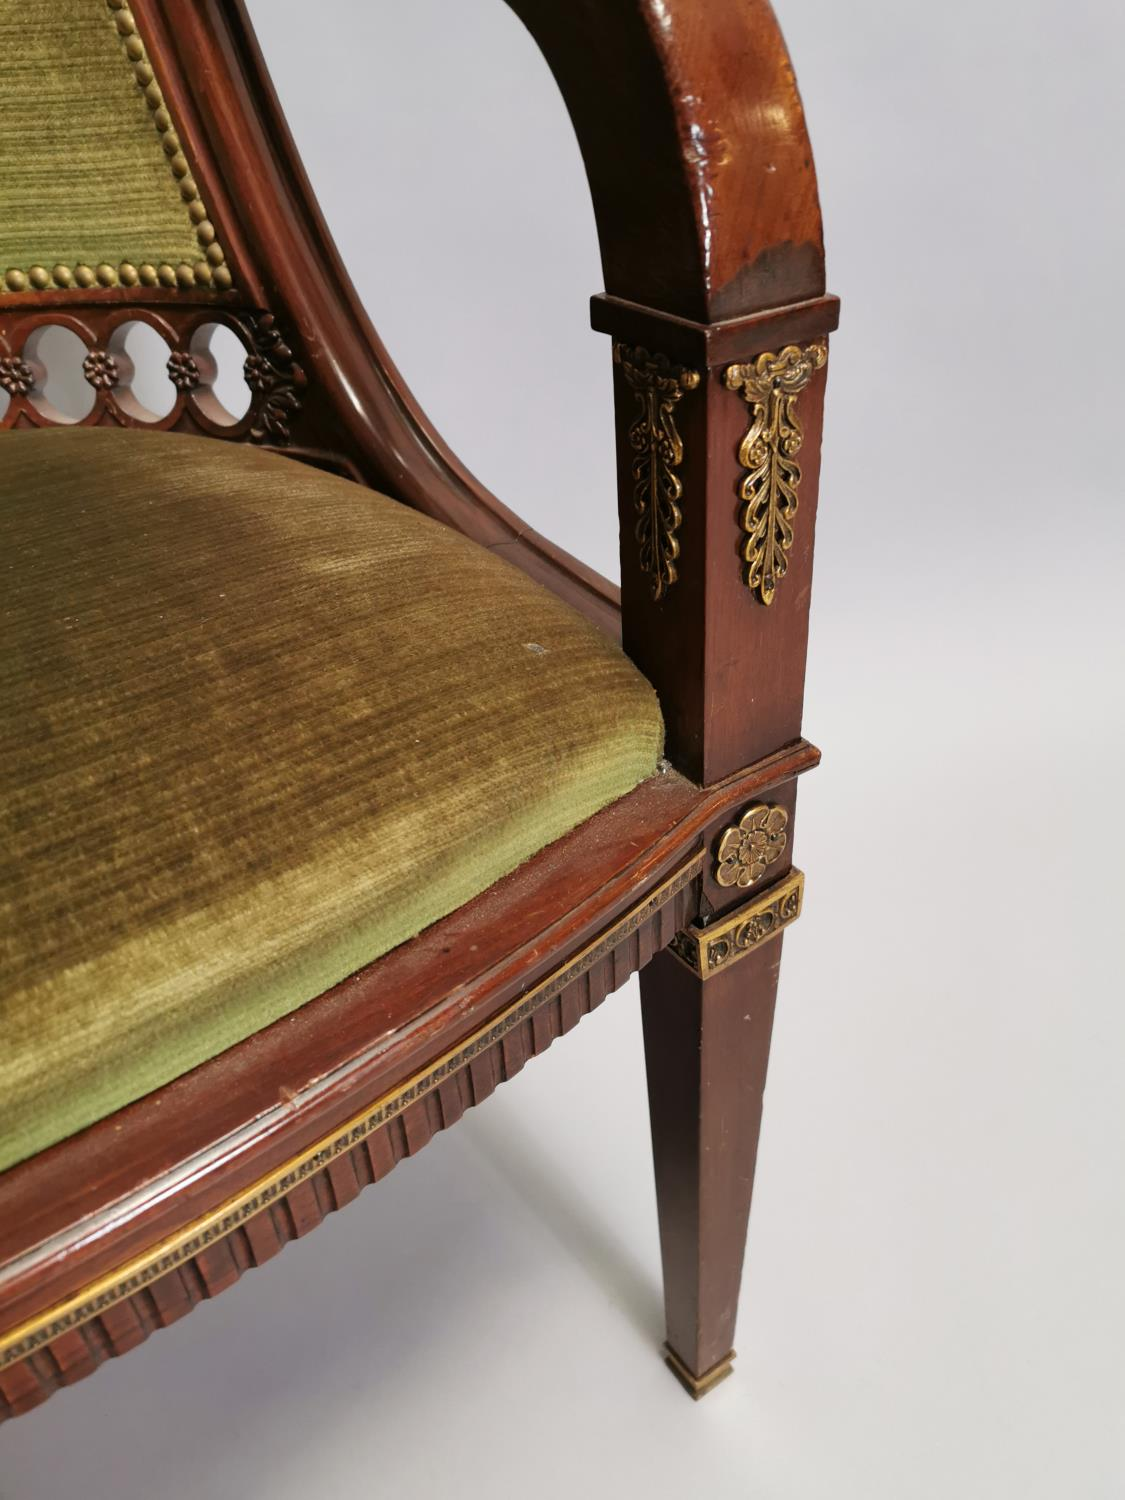 Upholstered mahogany desk chair - Image 2 of 8